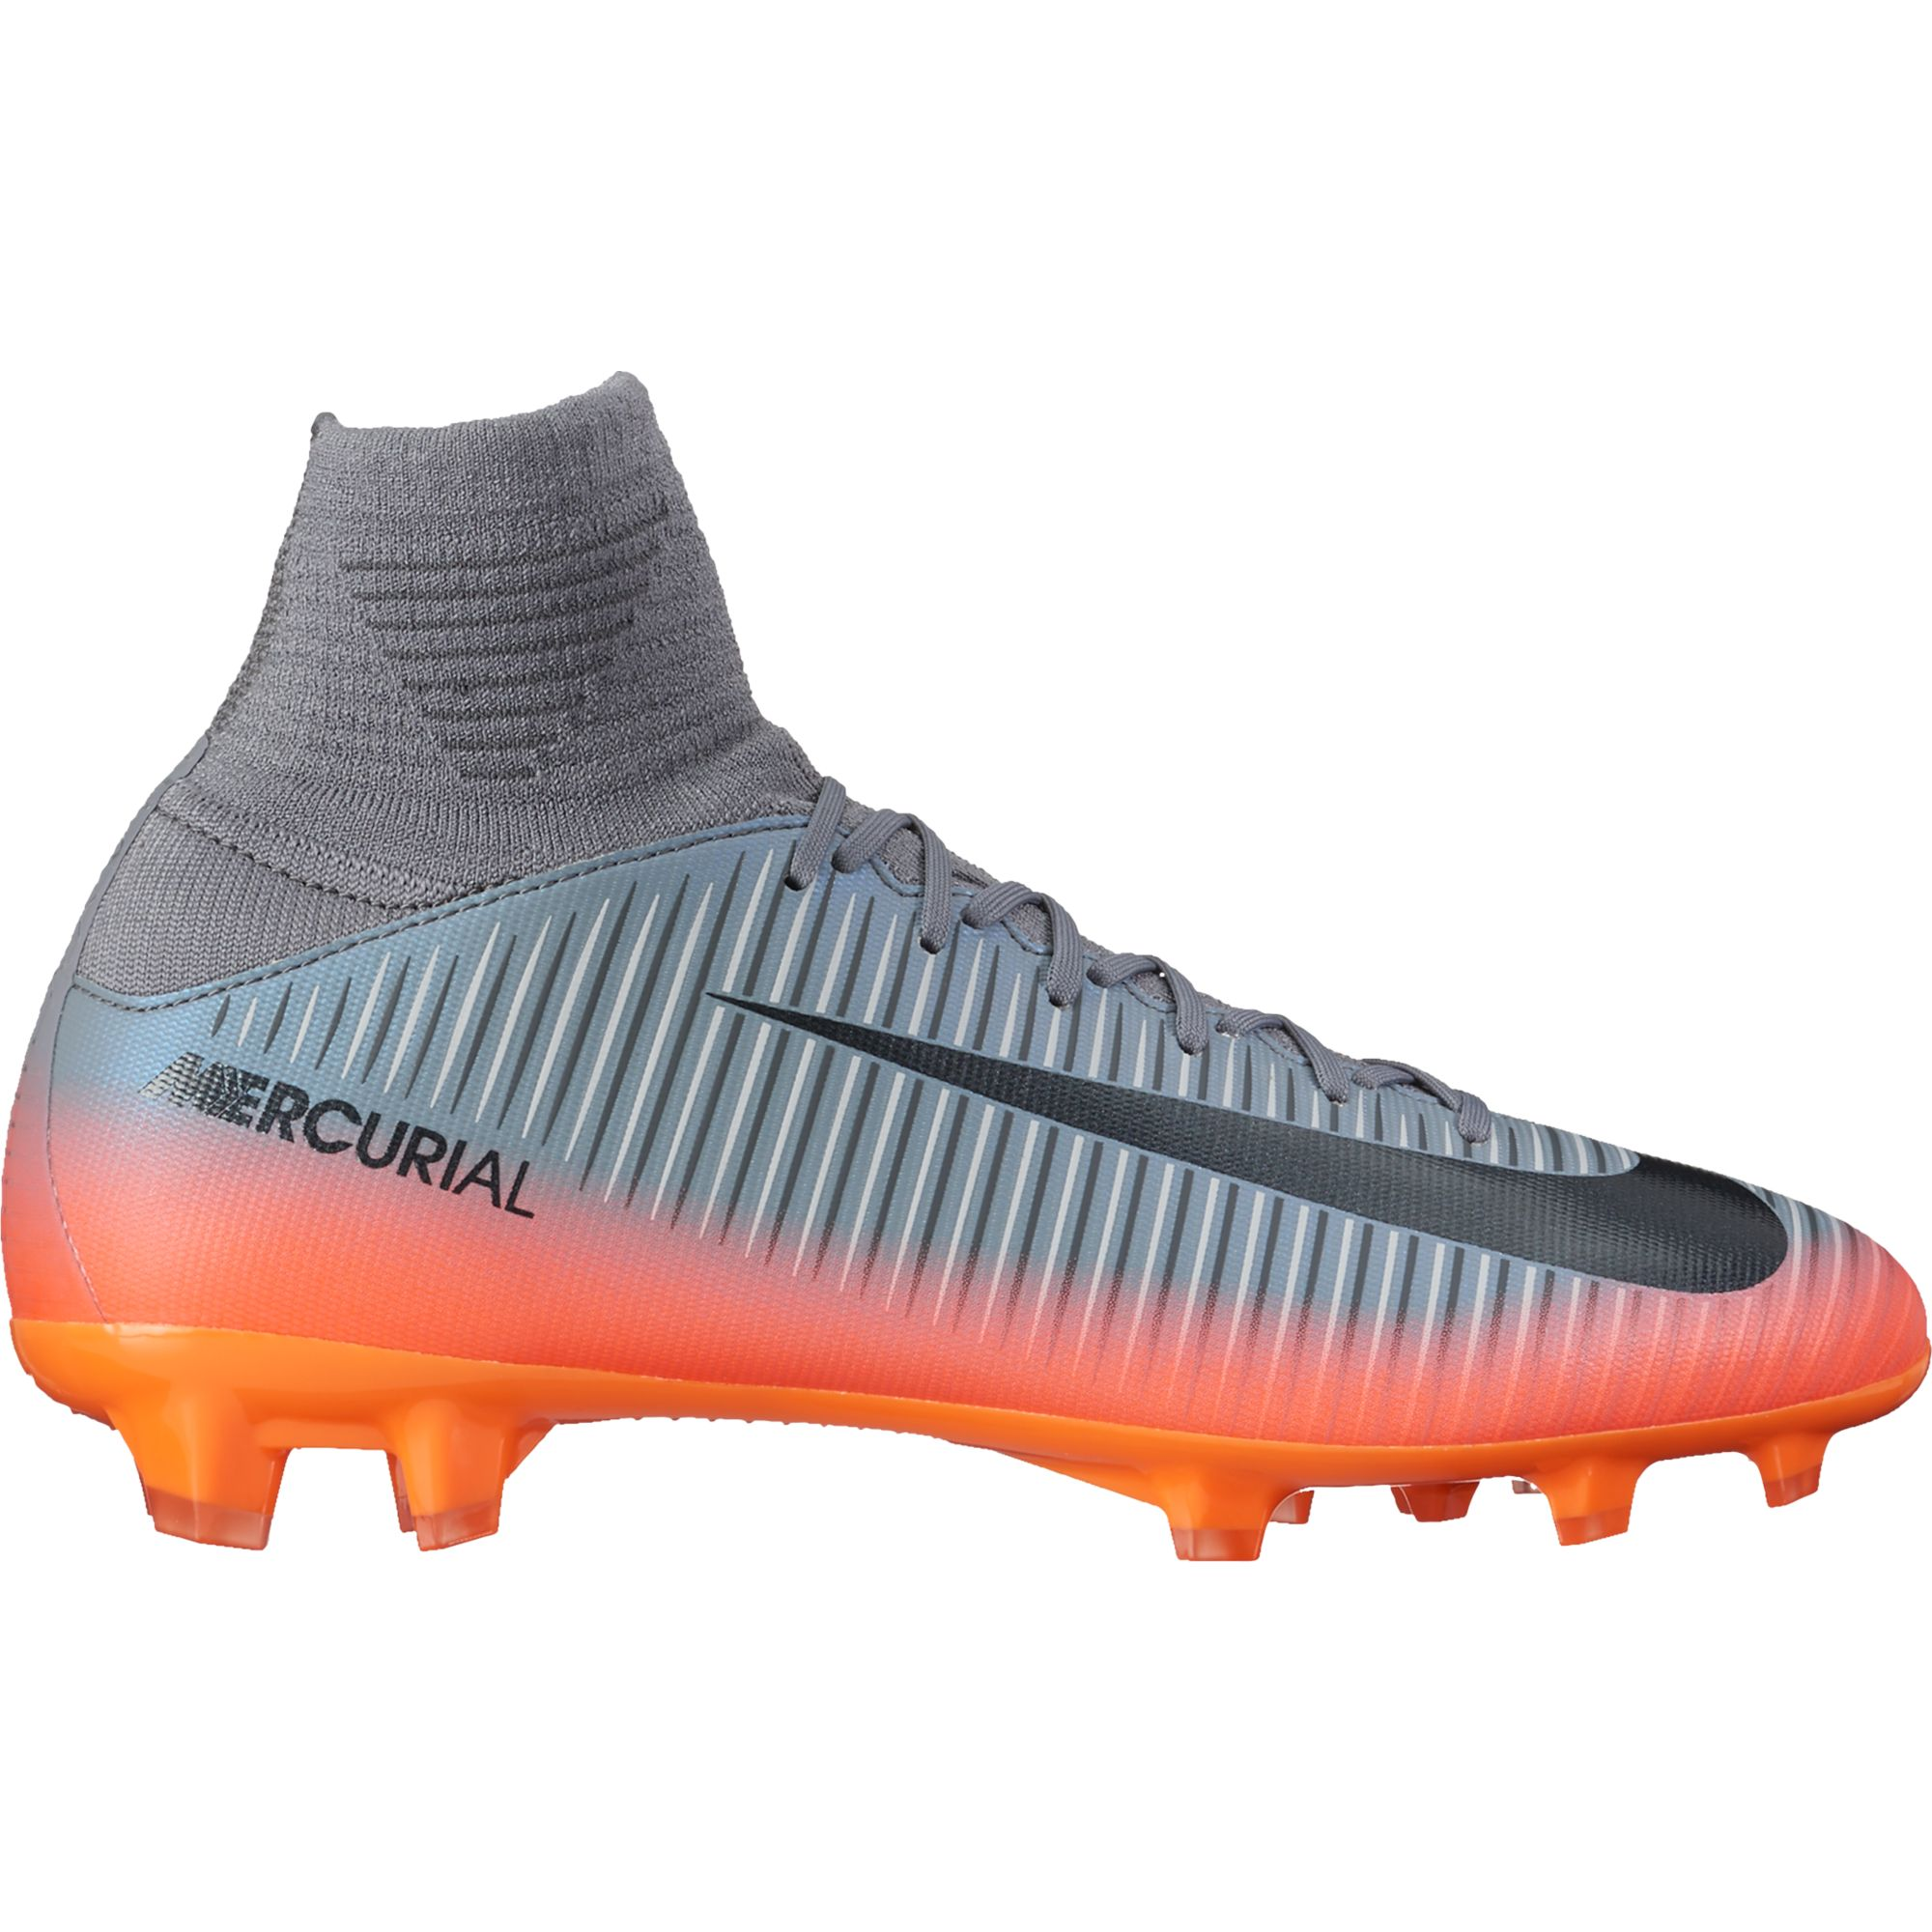 Nike Mercurial Superfly V Cr7 FG Pro, Chaussures de Football